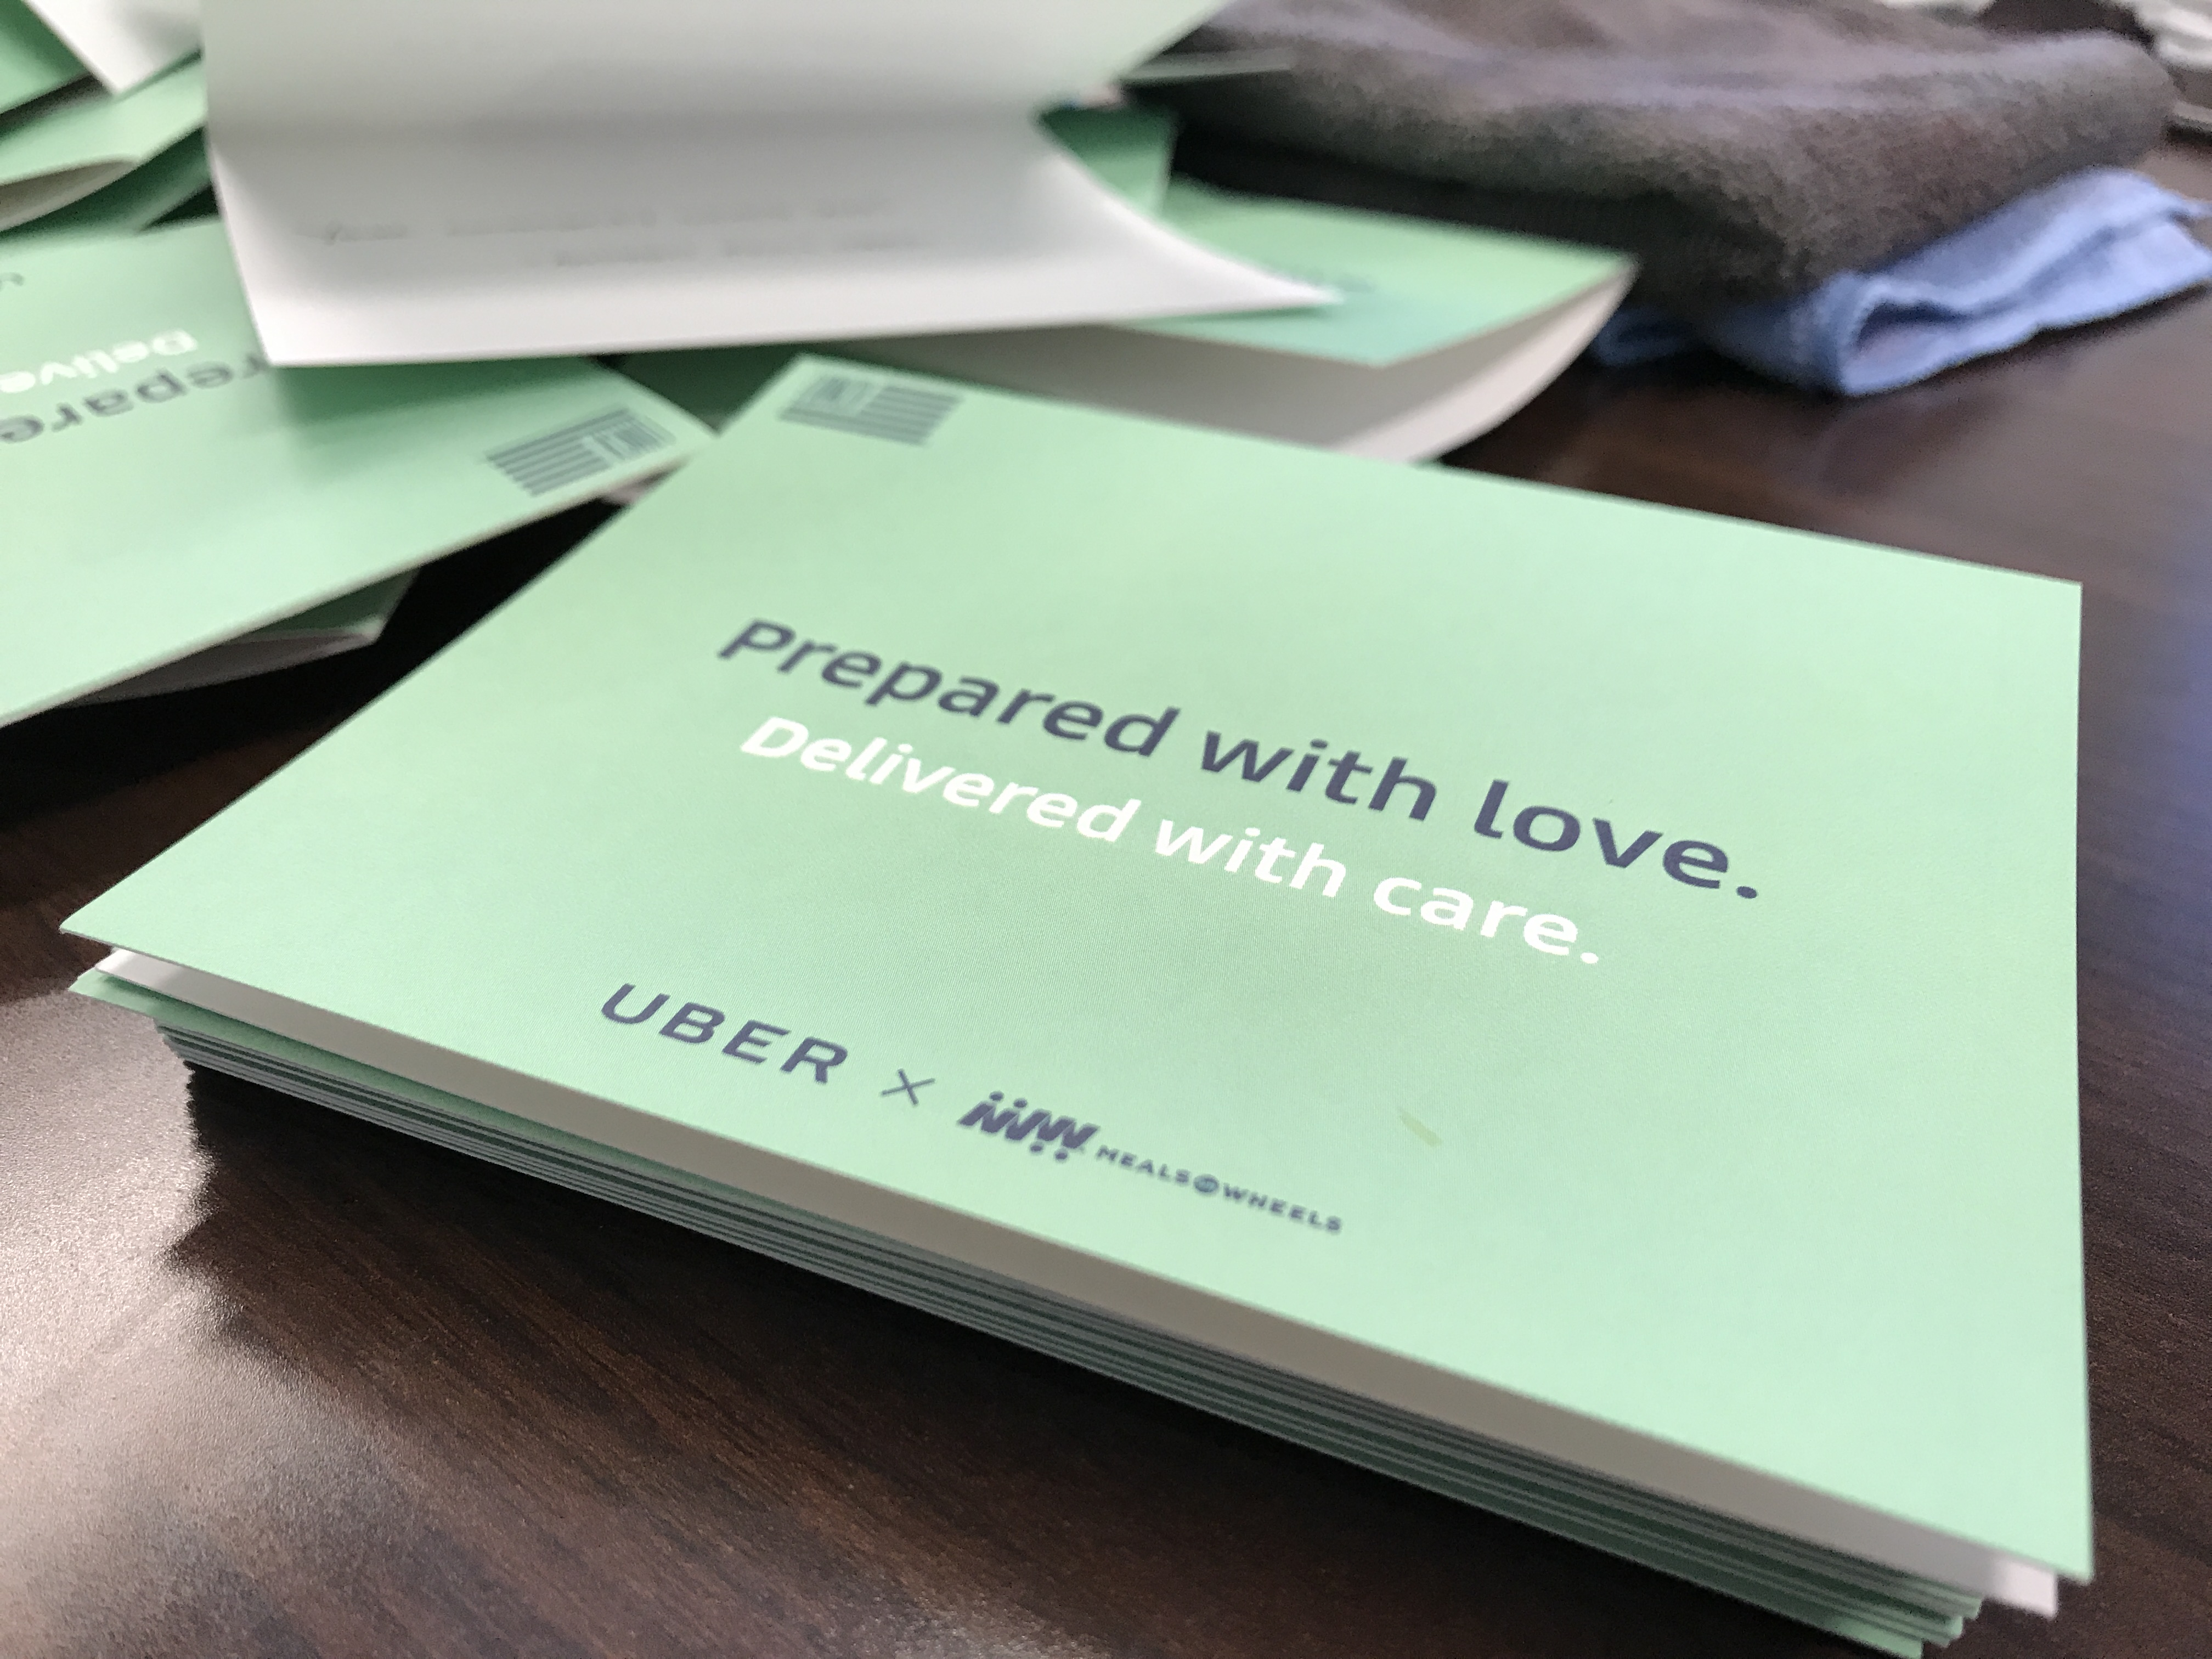 Uber partners with Meals on Wheels America, pledging 1 million